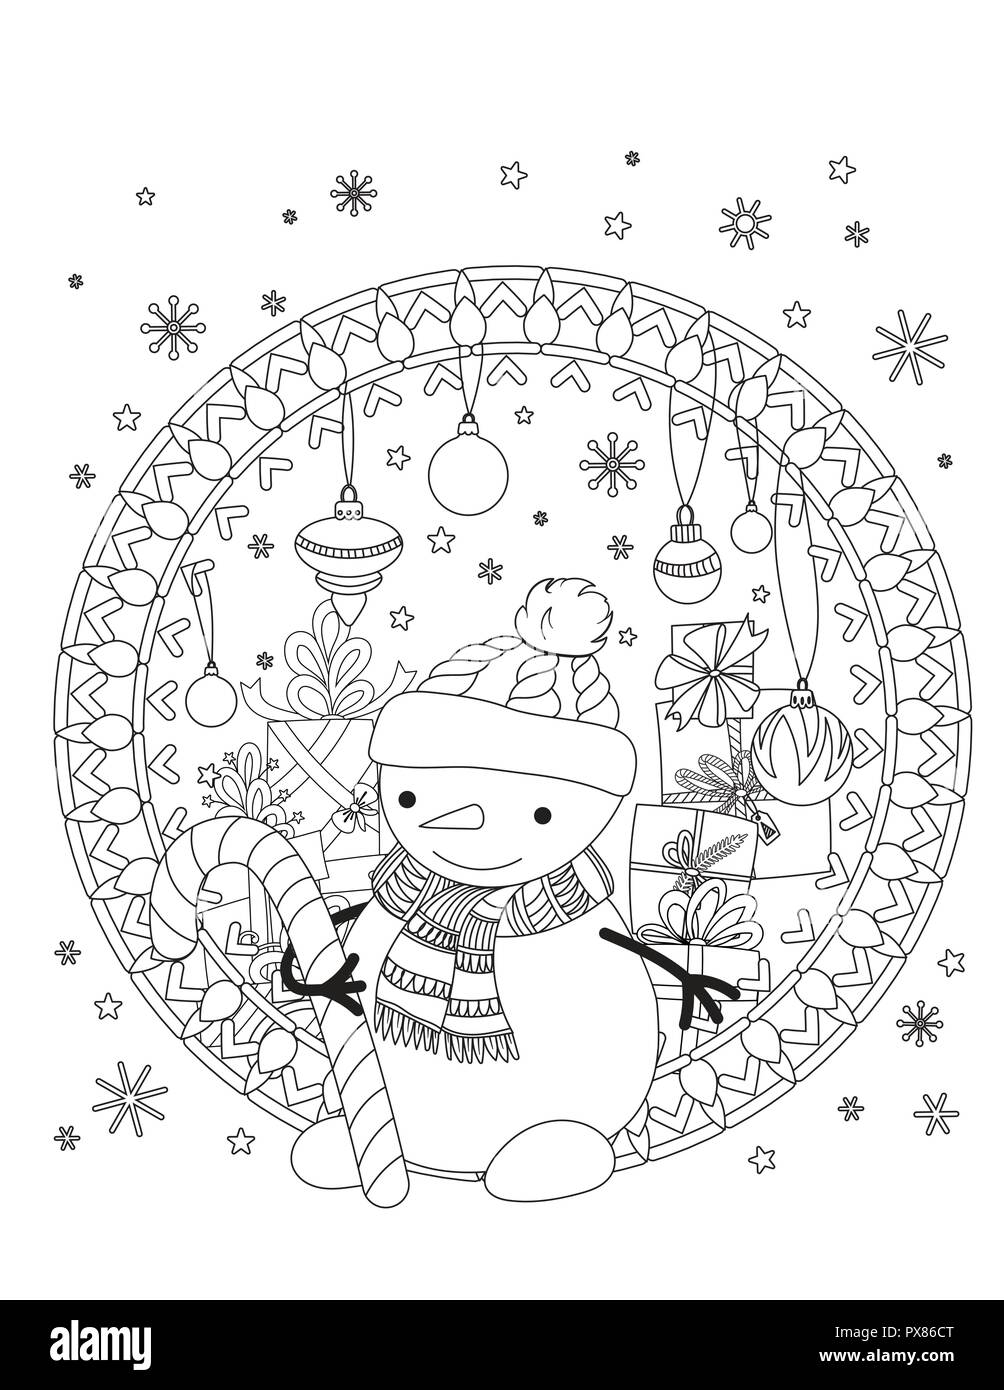 Mary Christmas socks coloring pages for kids, printable free ... | 1390x1004